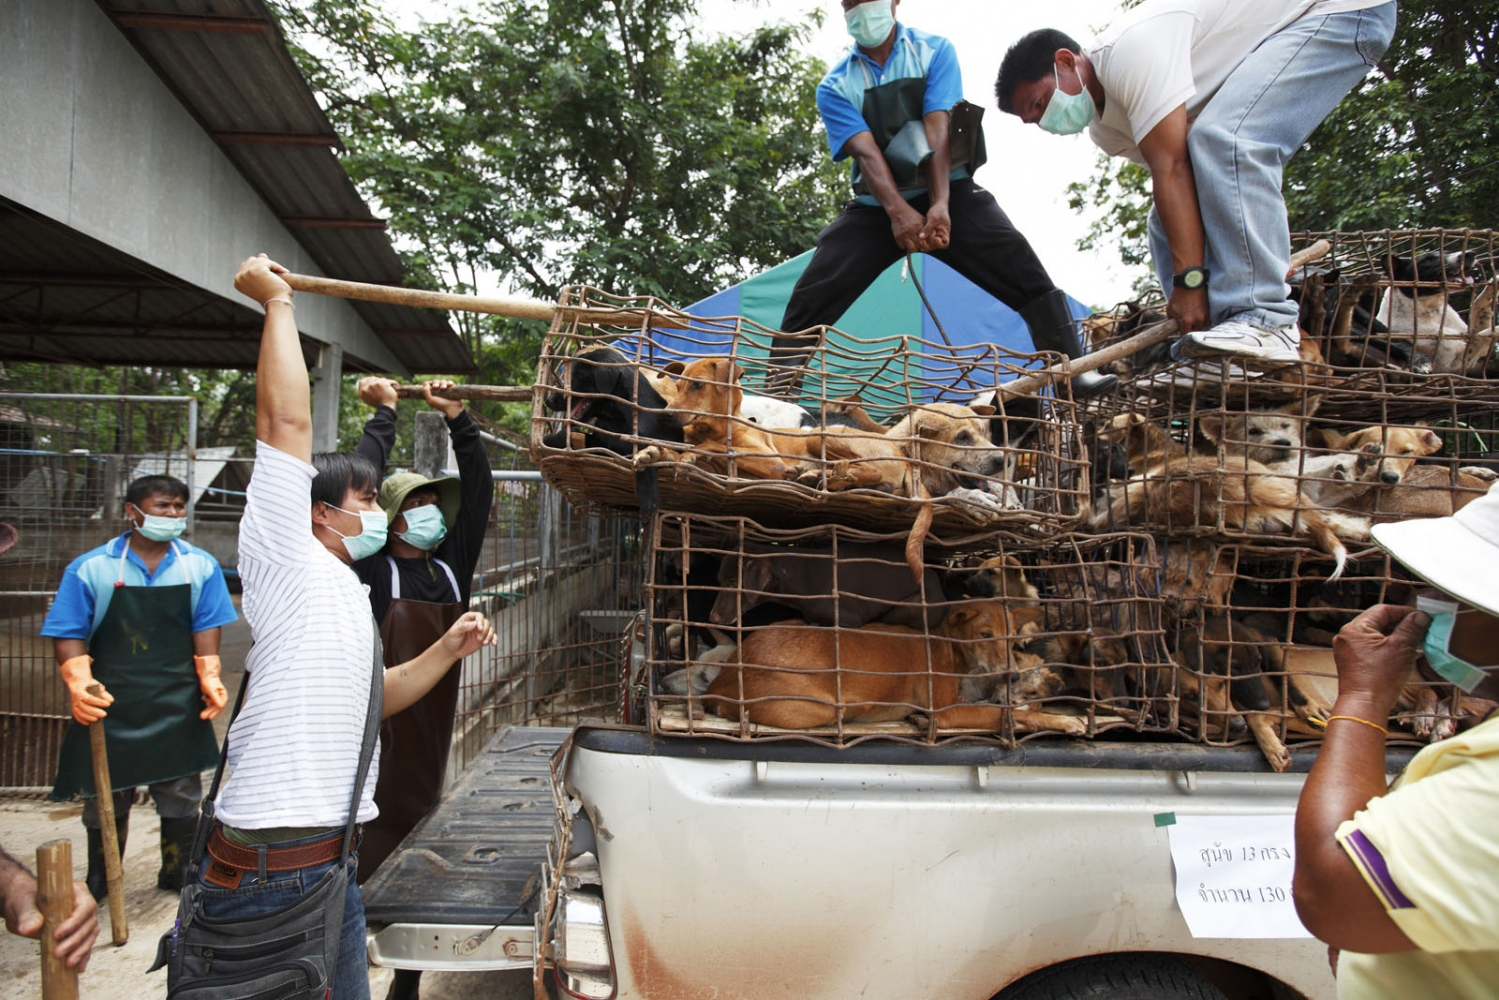 Rescued during a recent bust on a collection centre that was about to send over 700 dogs to Laos, the dogs are now unloaded at the Government dog shelter at Nakhon Phanom, Thailand.